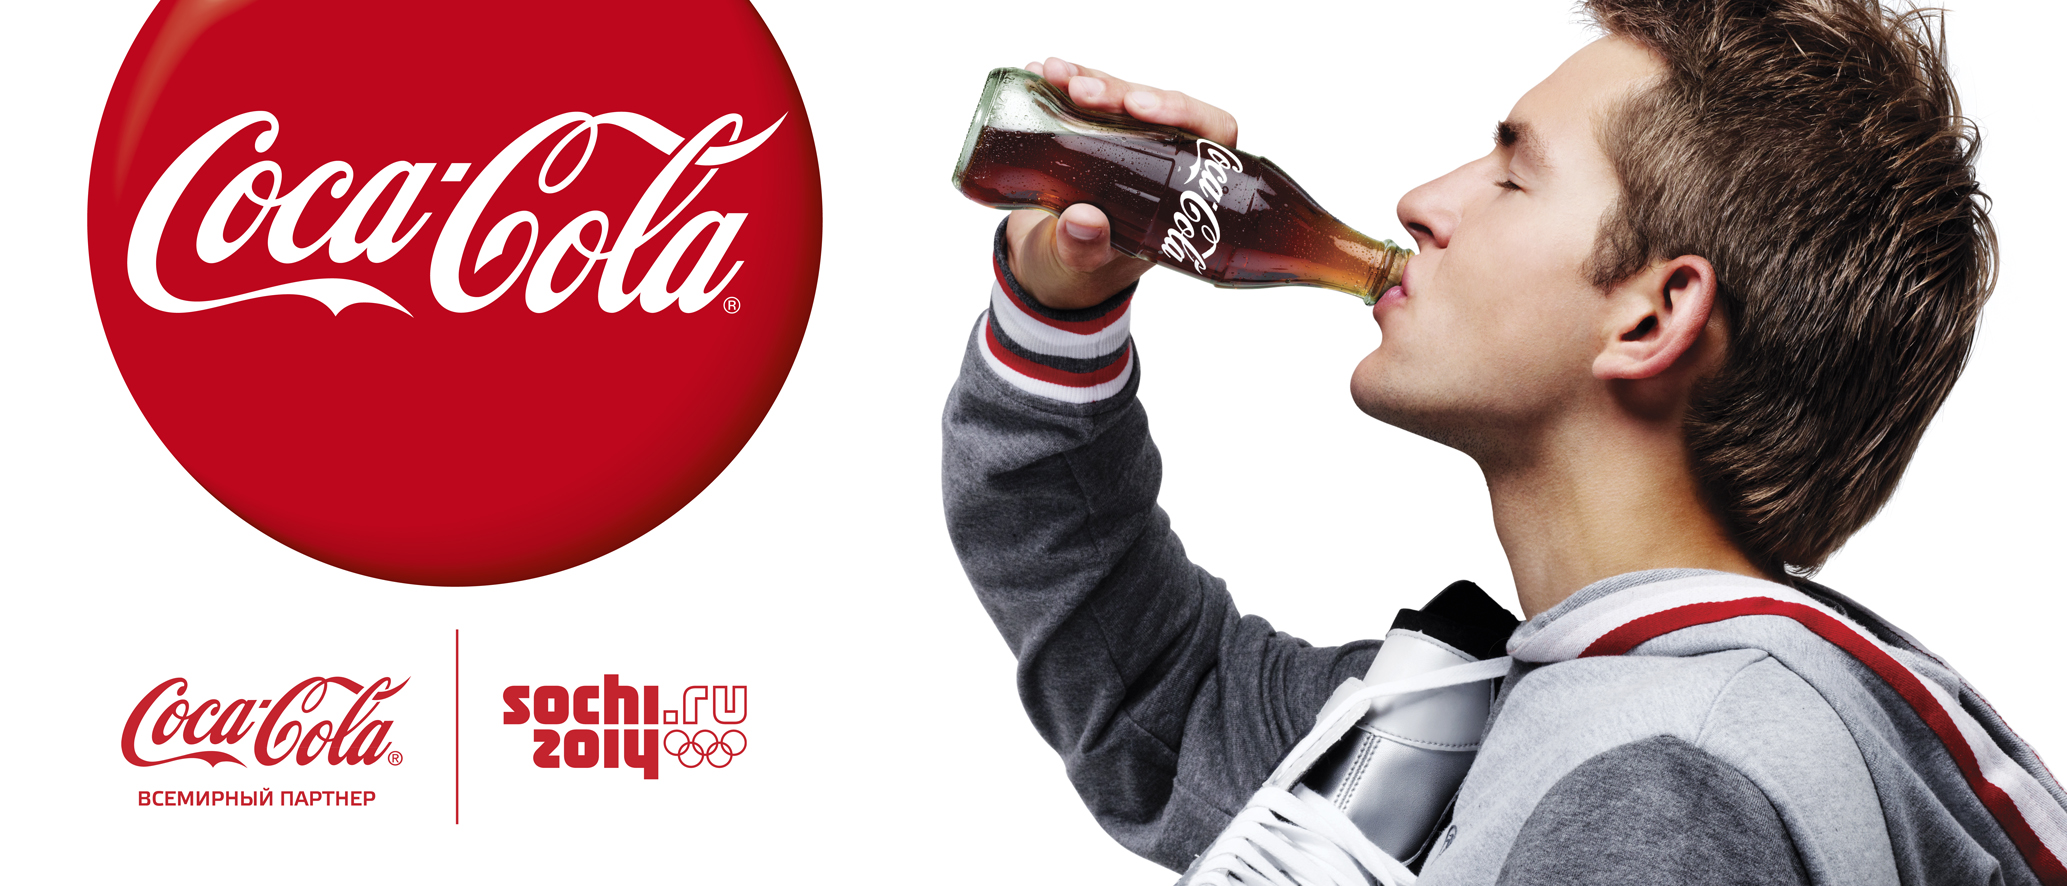 Coca-cola6/Production service: Focus Films/Фотограф: Michael Wirth/Аг-во: Saatchi&Saatchi/Продюсер: Елена Волошина